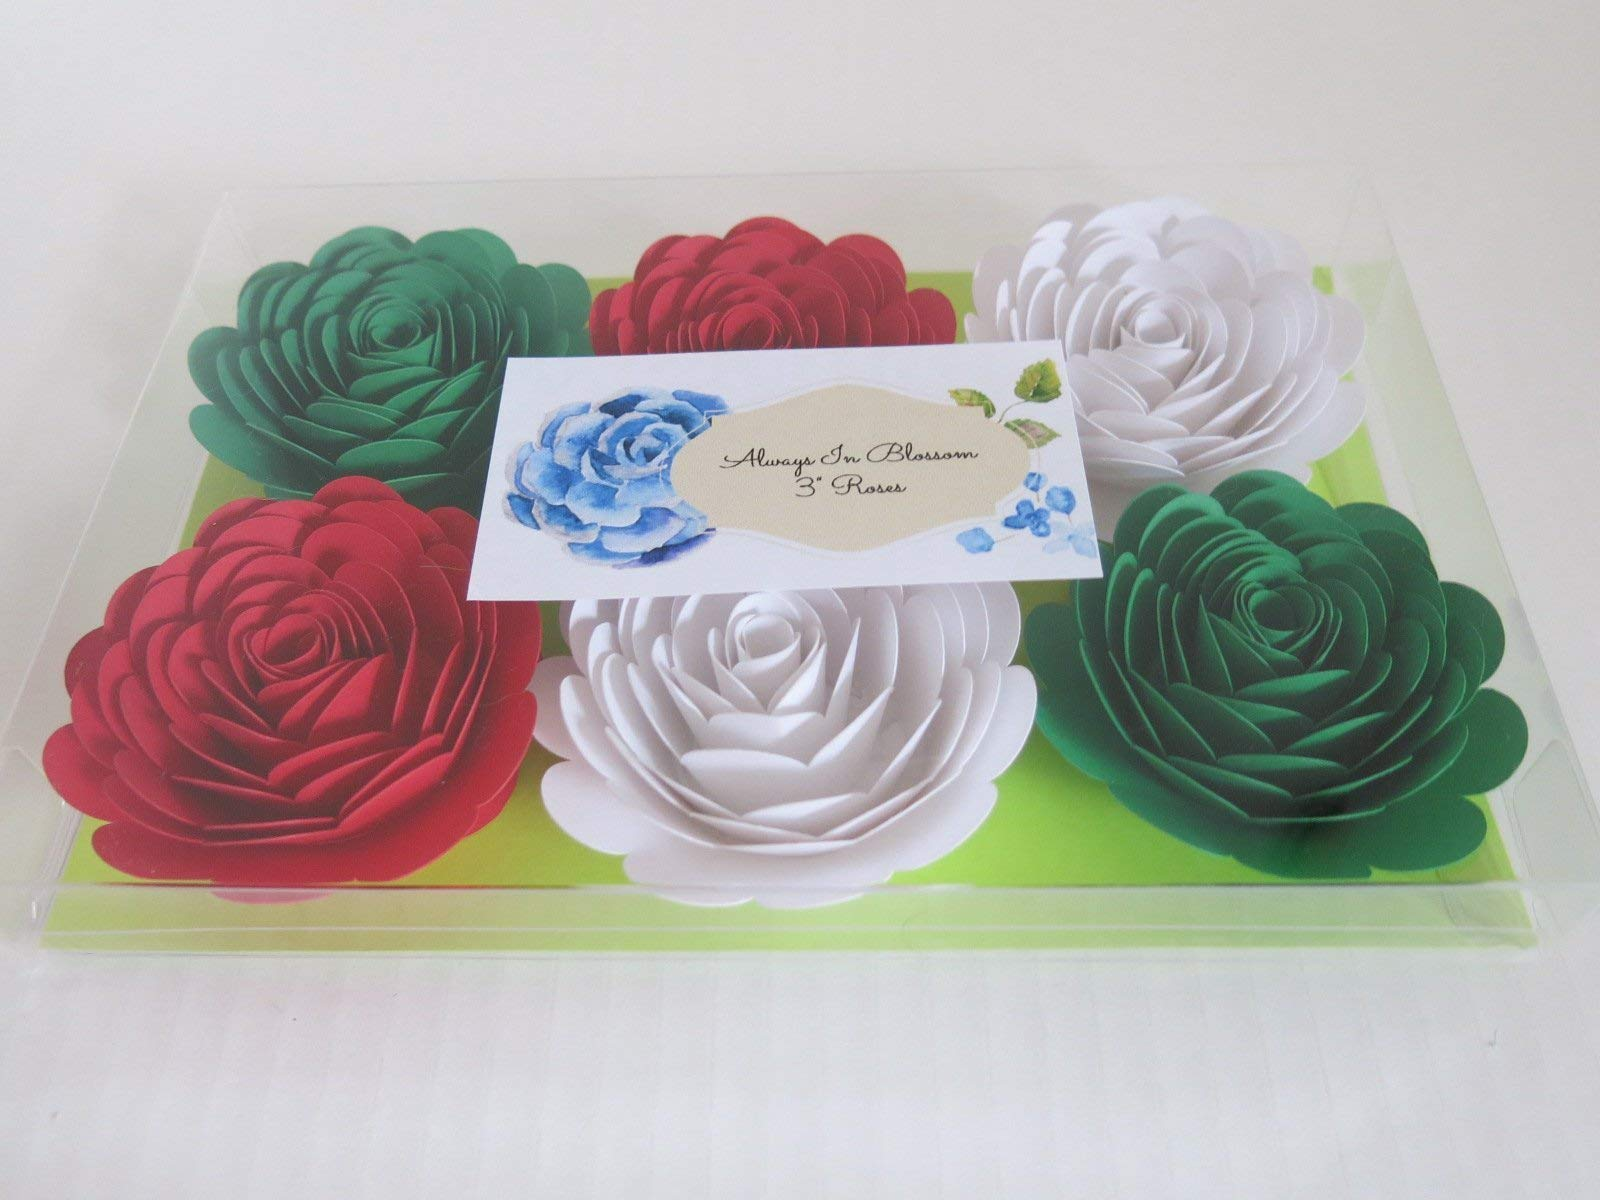 Red-White-Green-Mexican-Color-Roses-3-Paper-Flowers-Set-of-6-Wedding-Flowers-Bridal-Shower-Decor-ItalyItalian-Theme-Tea-Party-Decorations-Always-In-Blossom